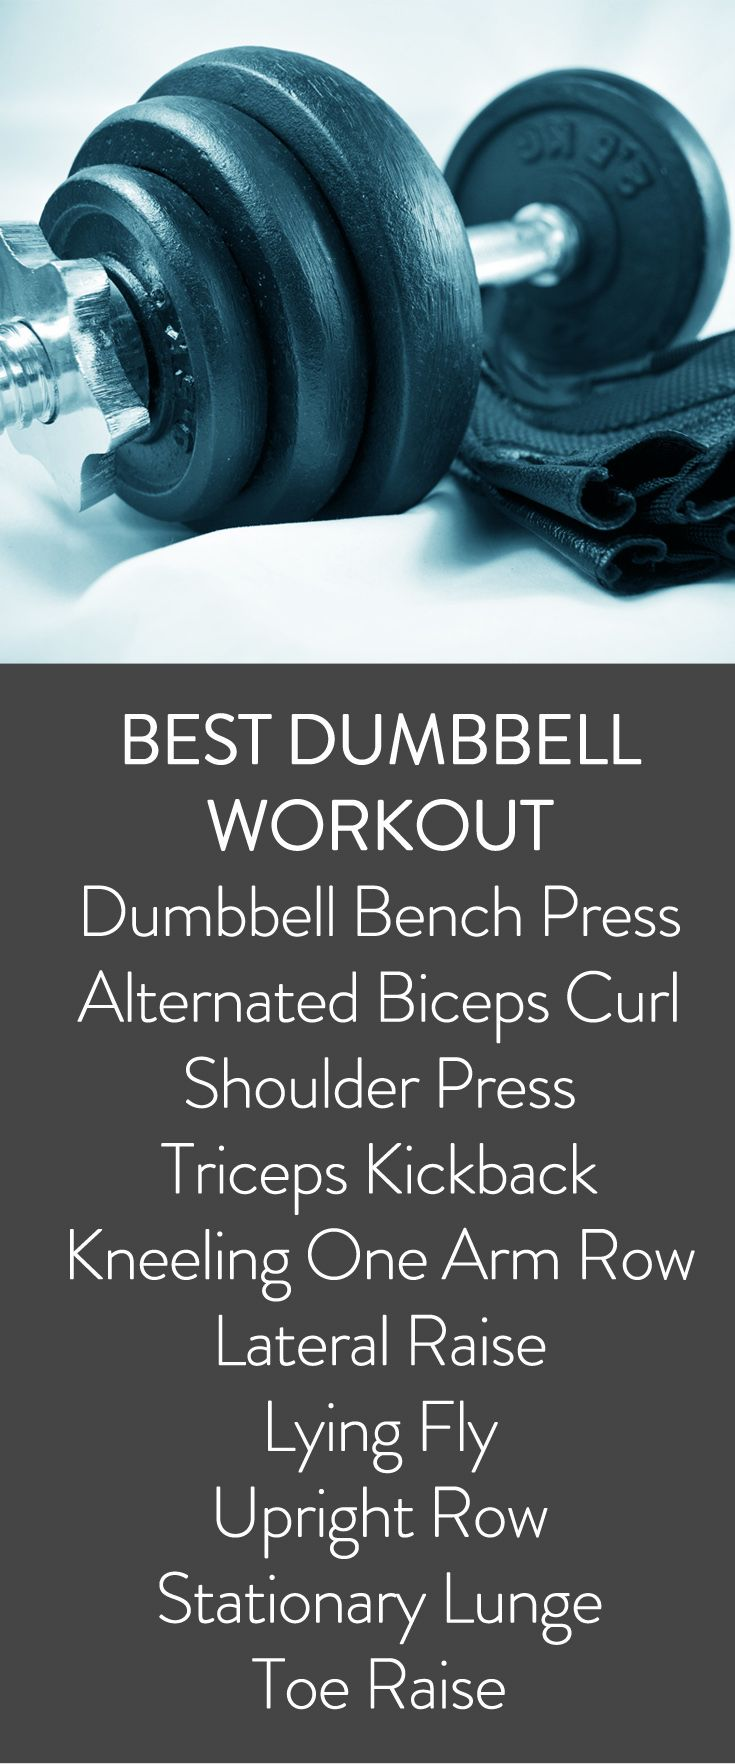 Top 10 Best Adjustable Dumbbell you can use in and out of the gym